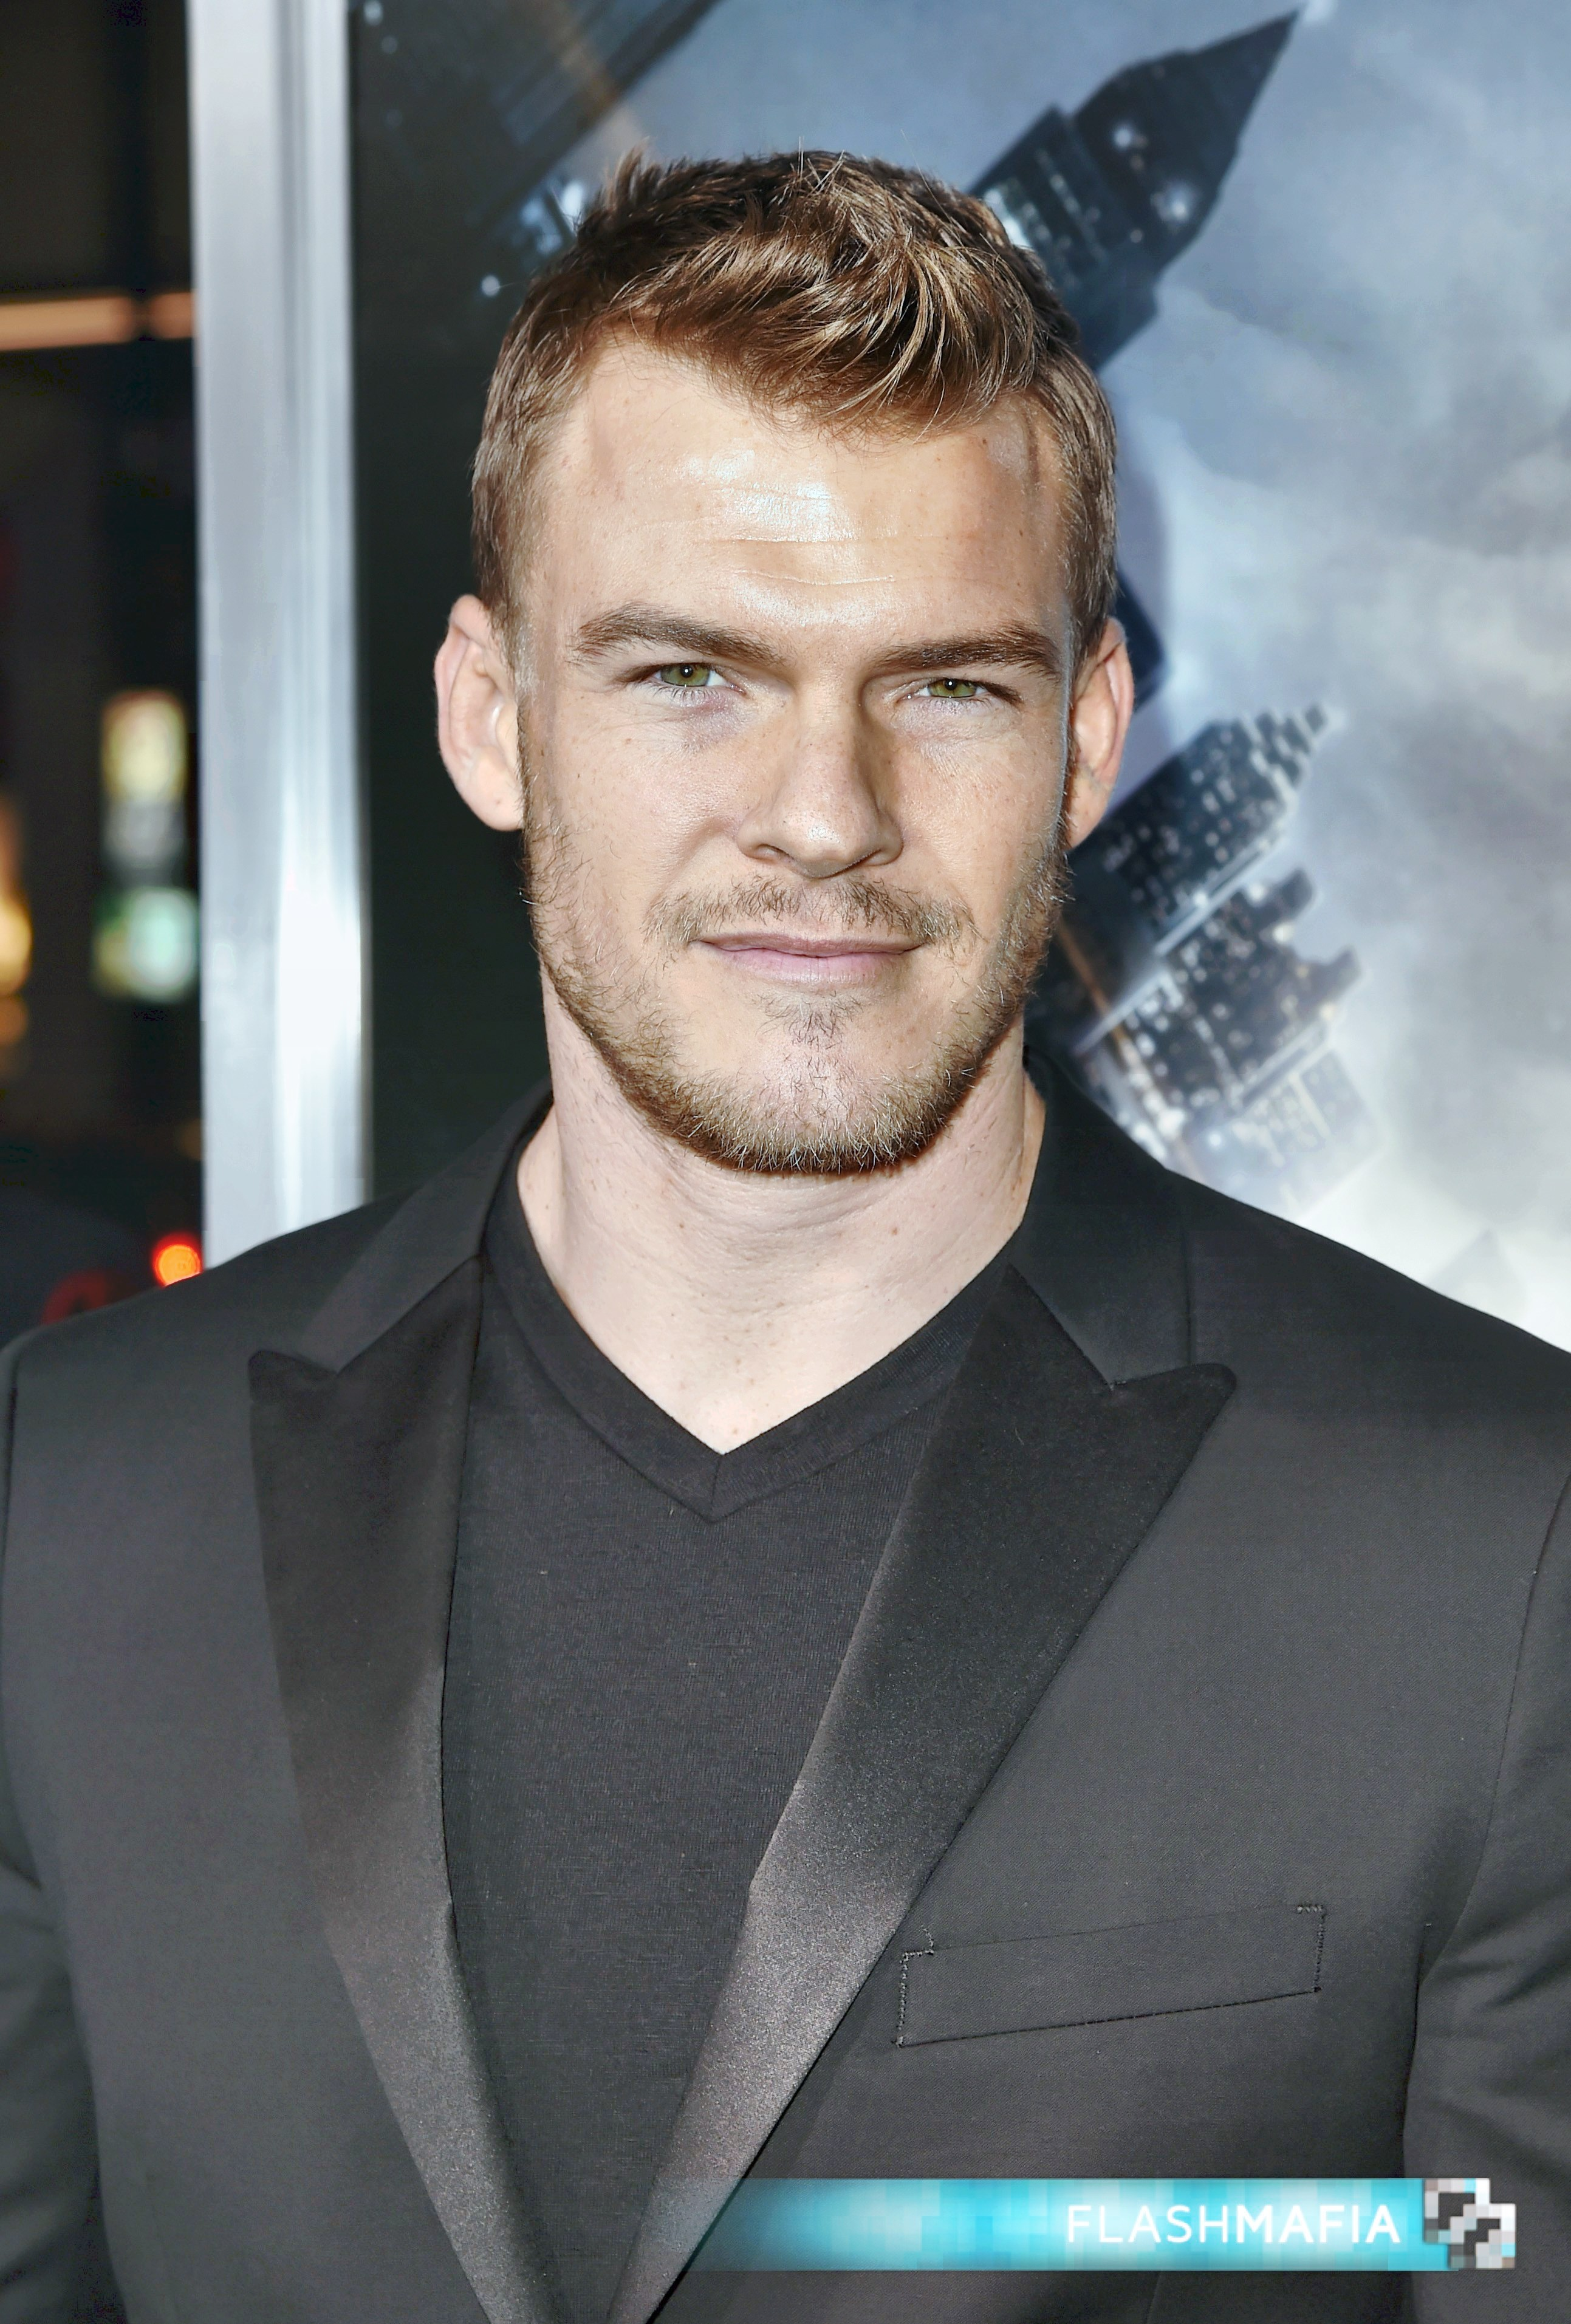 Alan Ritchson | Known people - famous people news and biographies